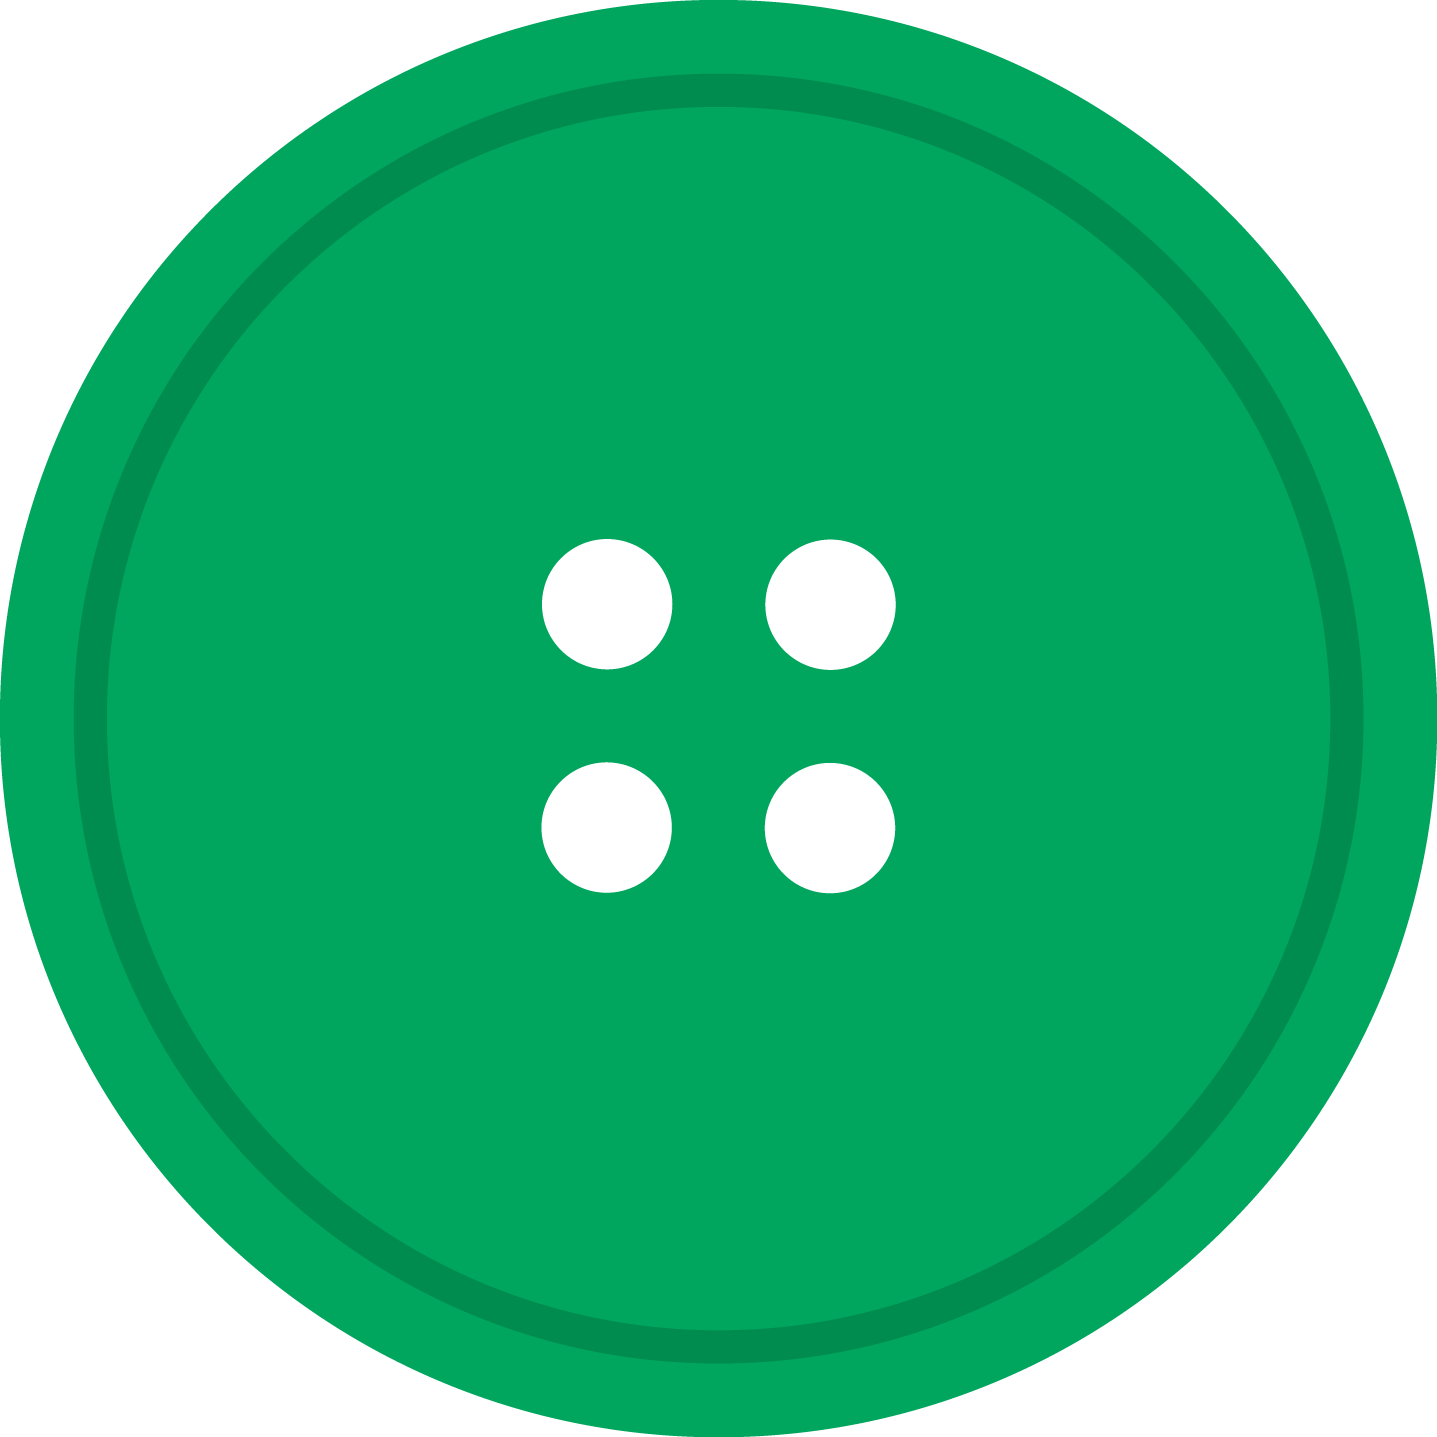 Greent Round Button Png Image Round Button Png Images Image